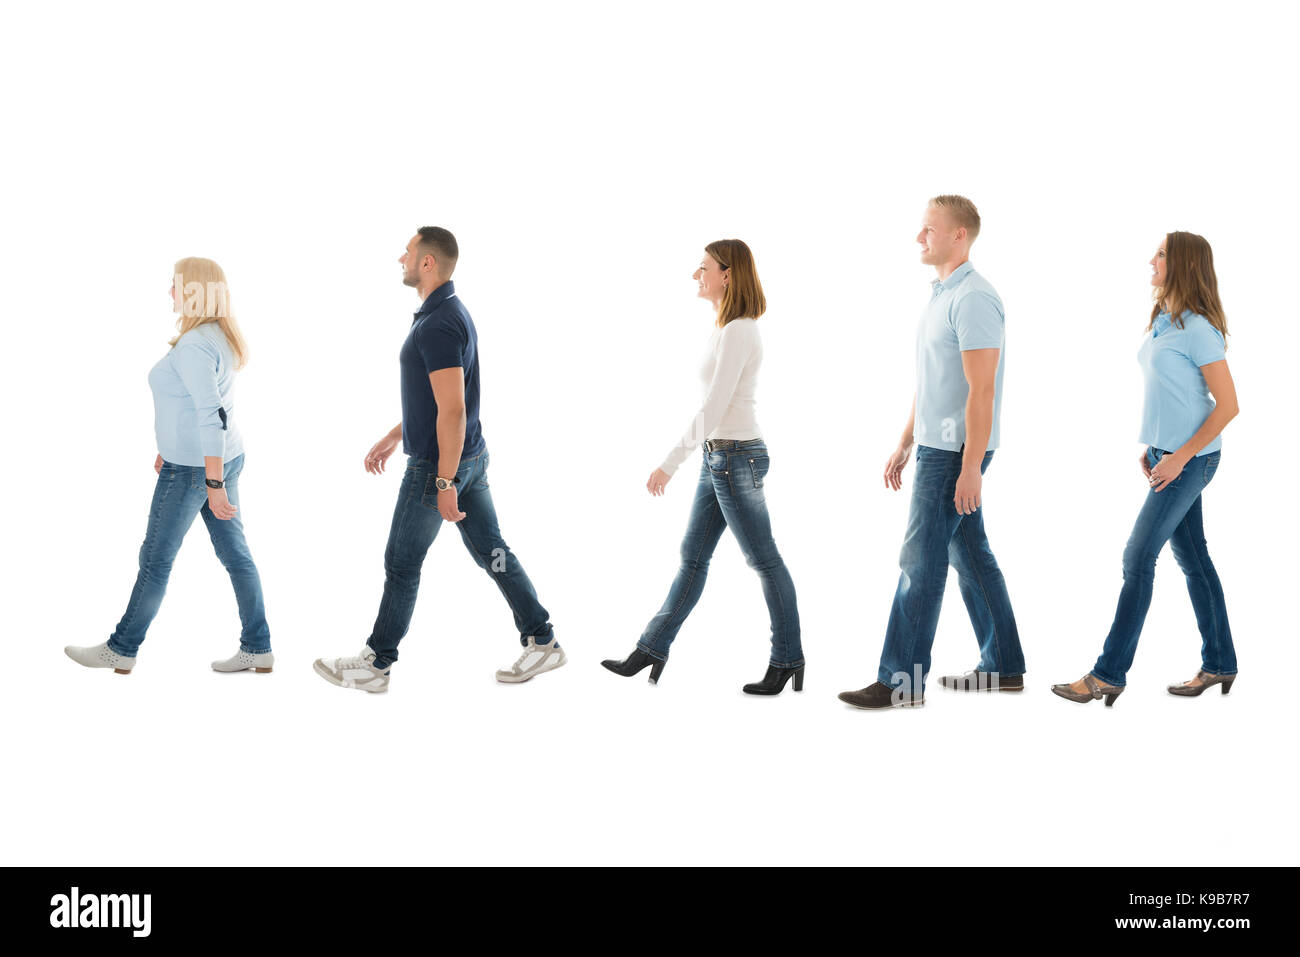 Full length side view of men and women walking in queue isolated on white background - Stock Image